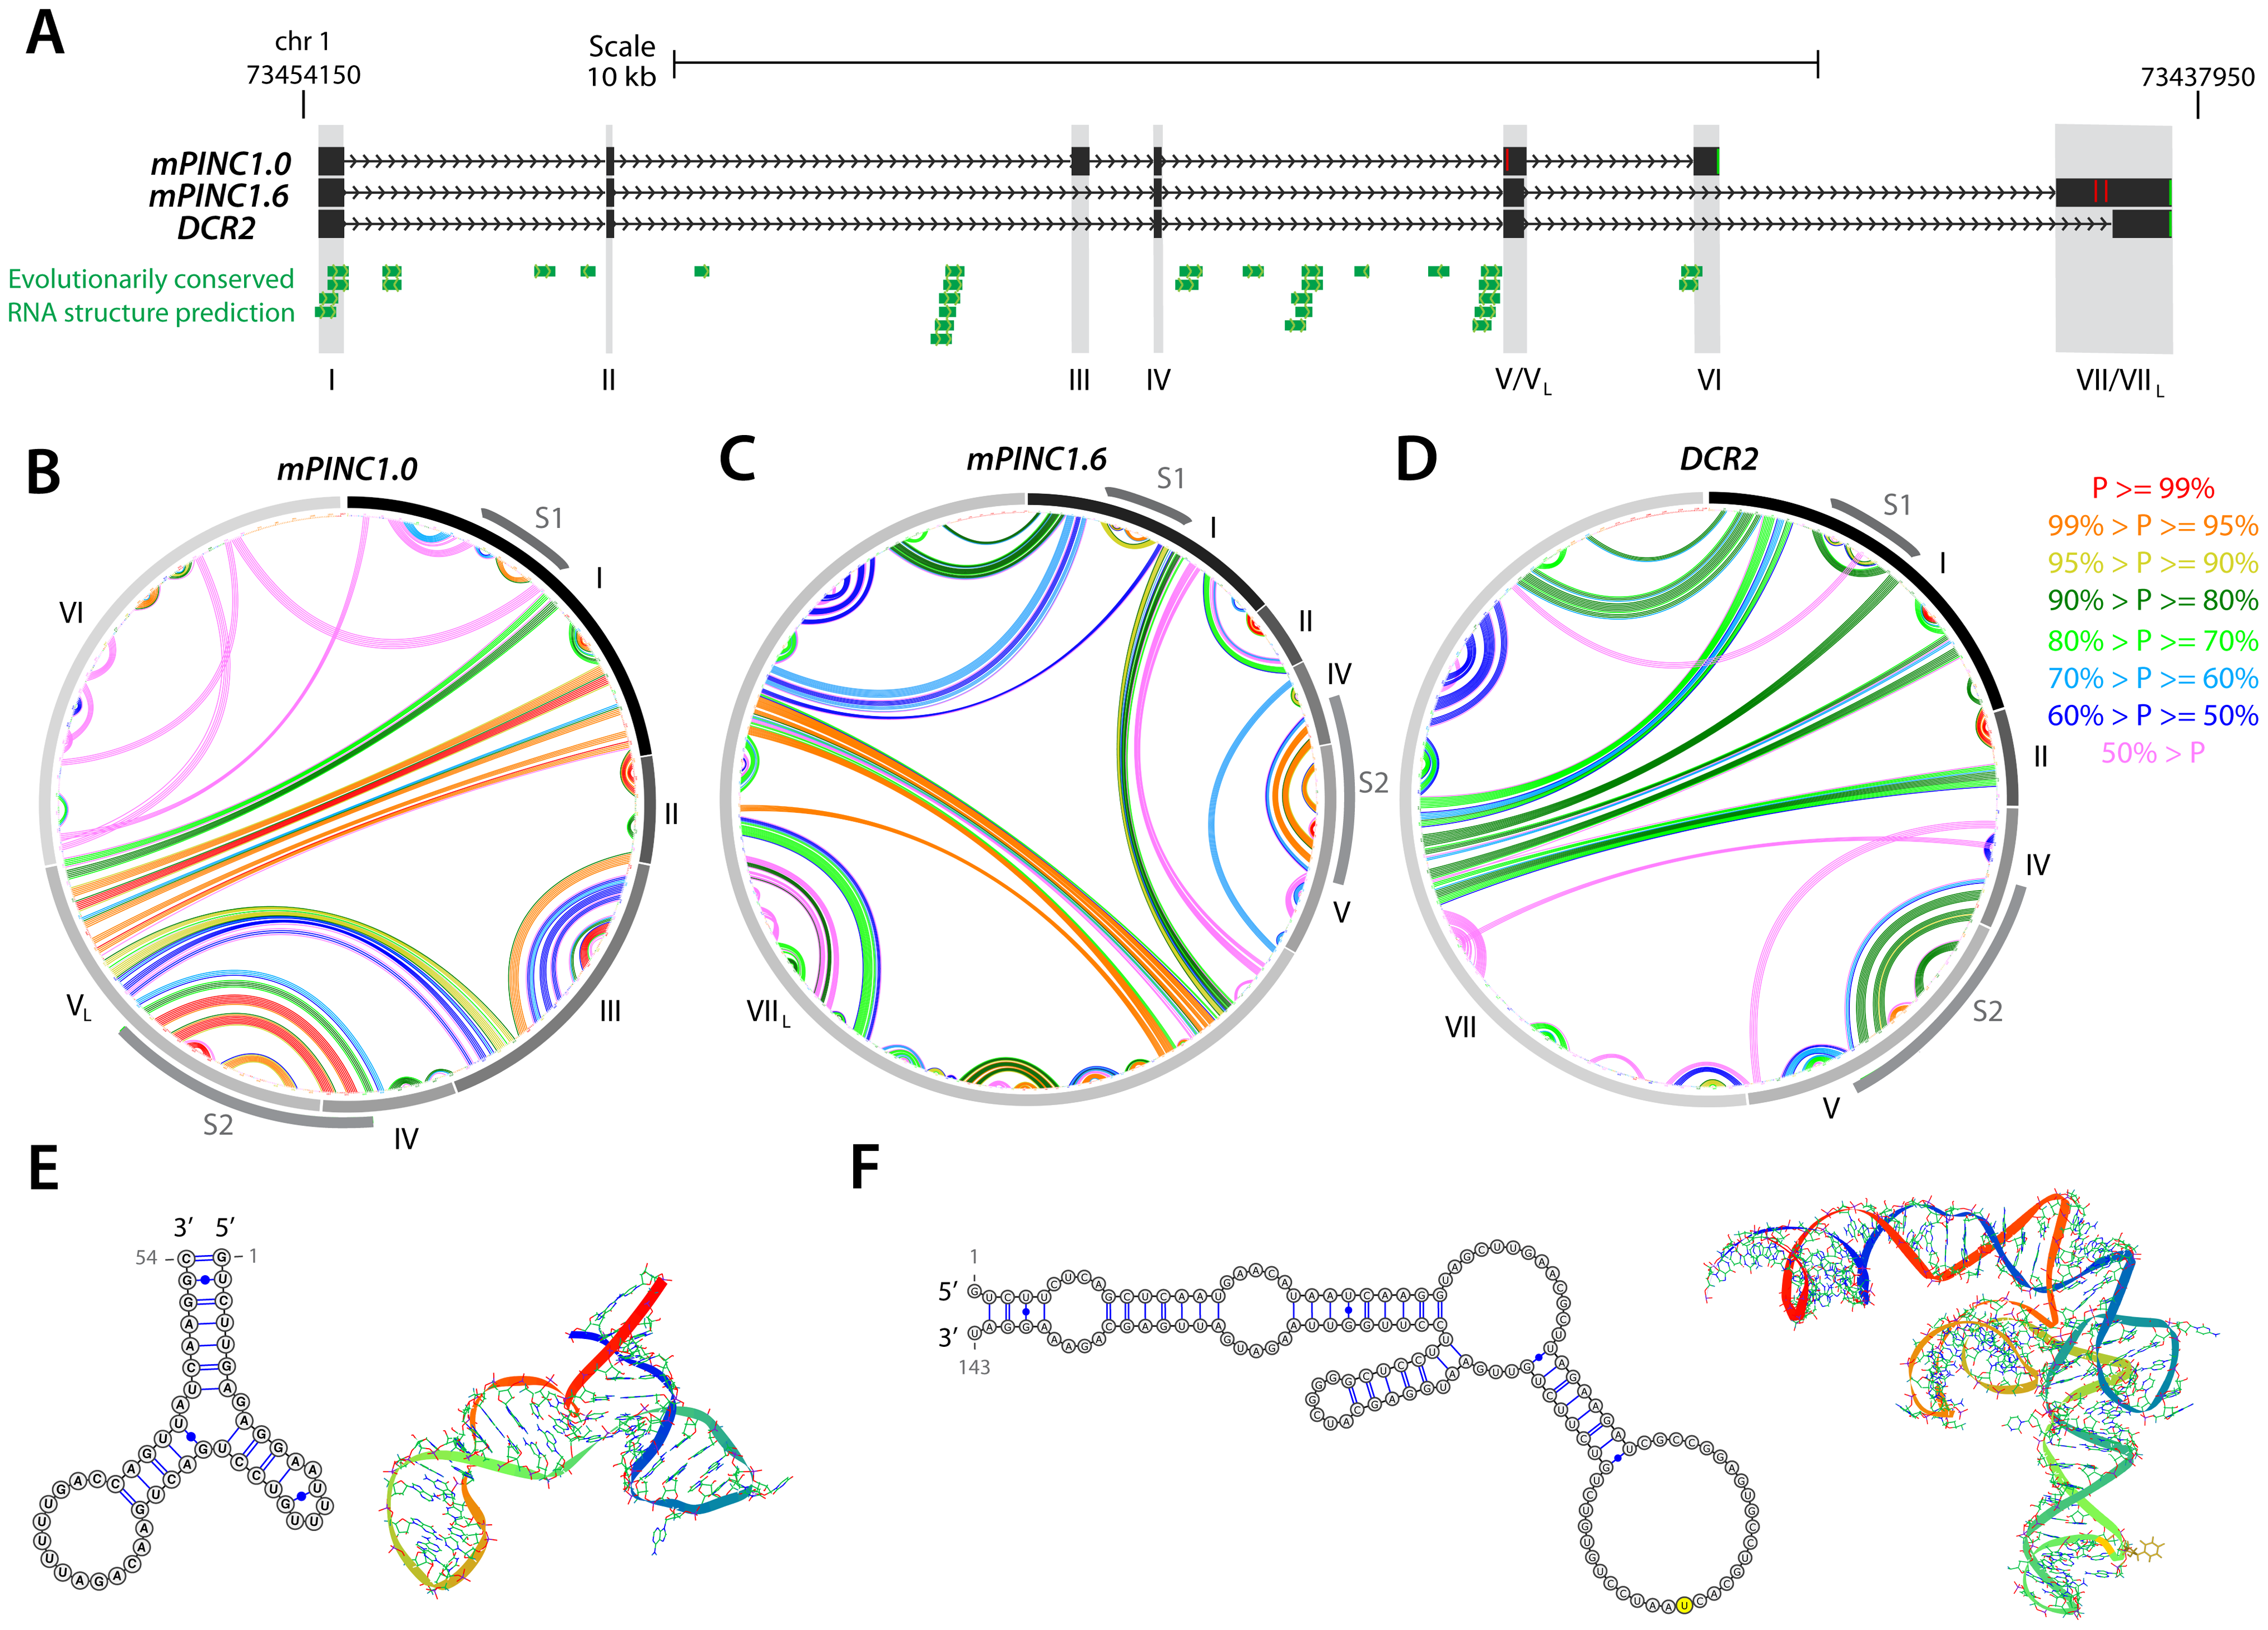 Structural analysis of the <i>PINC</i> locus.